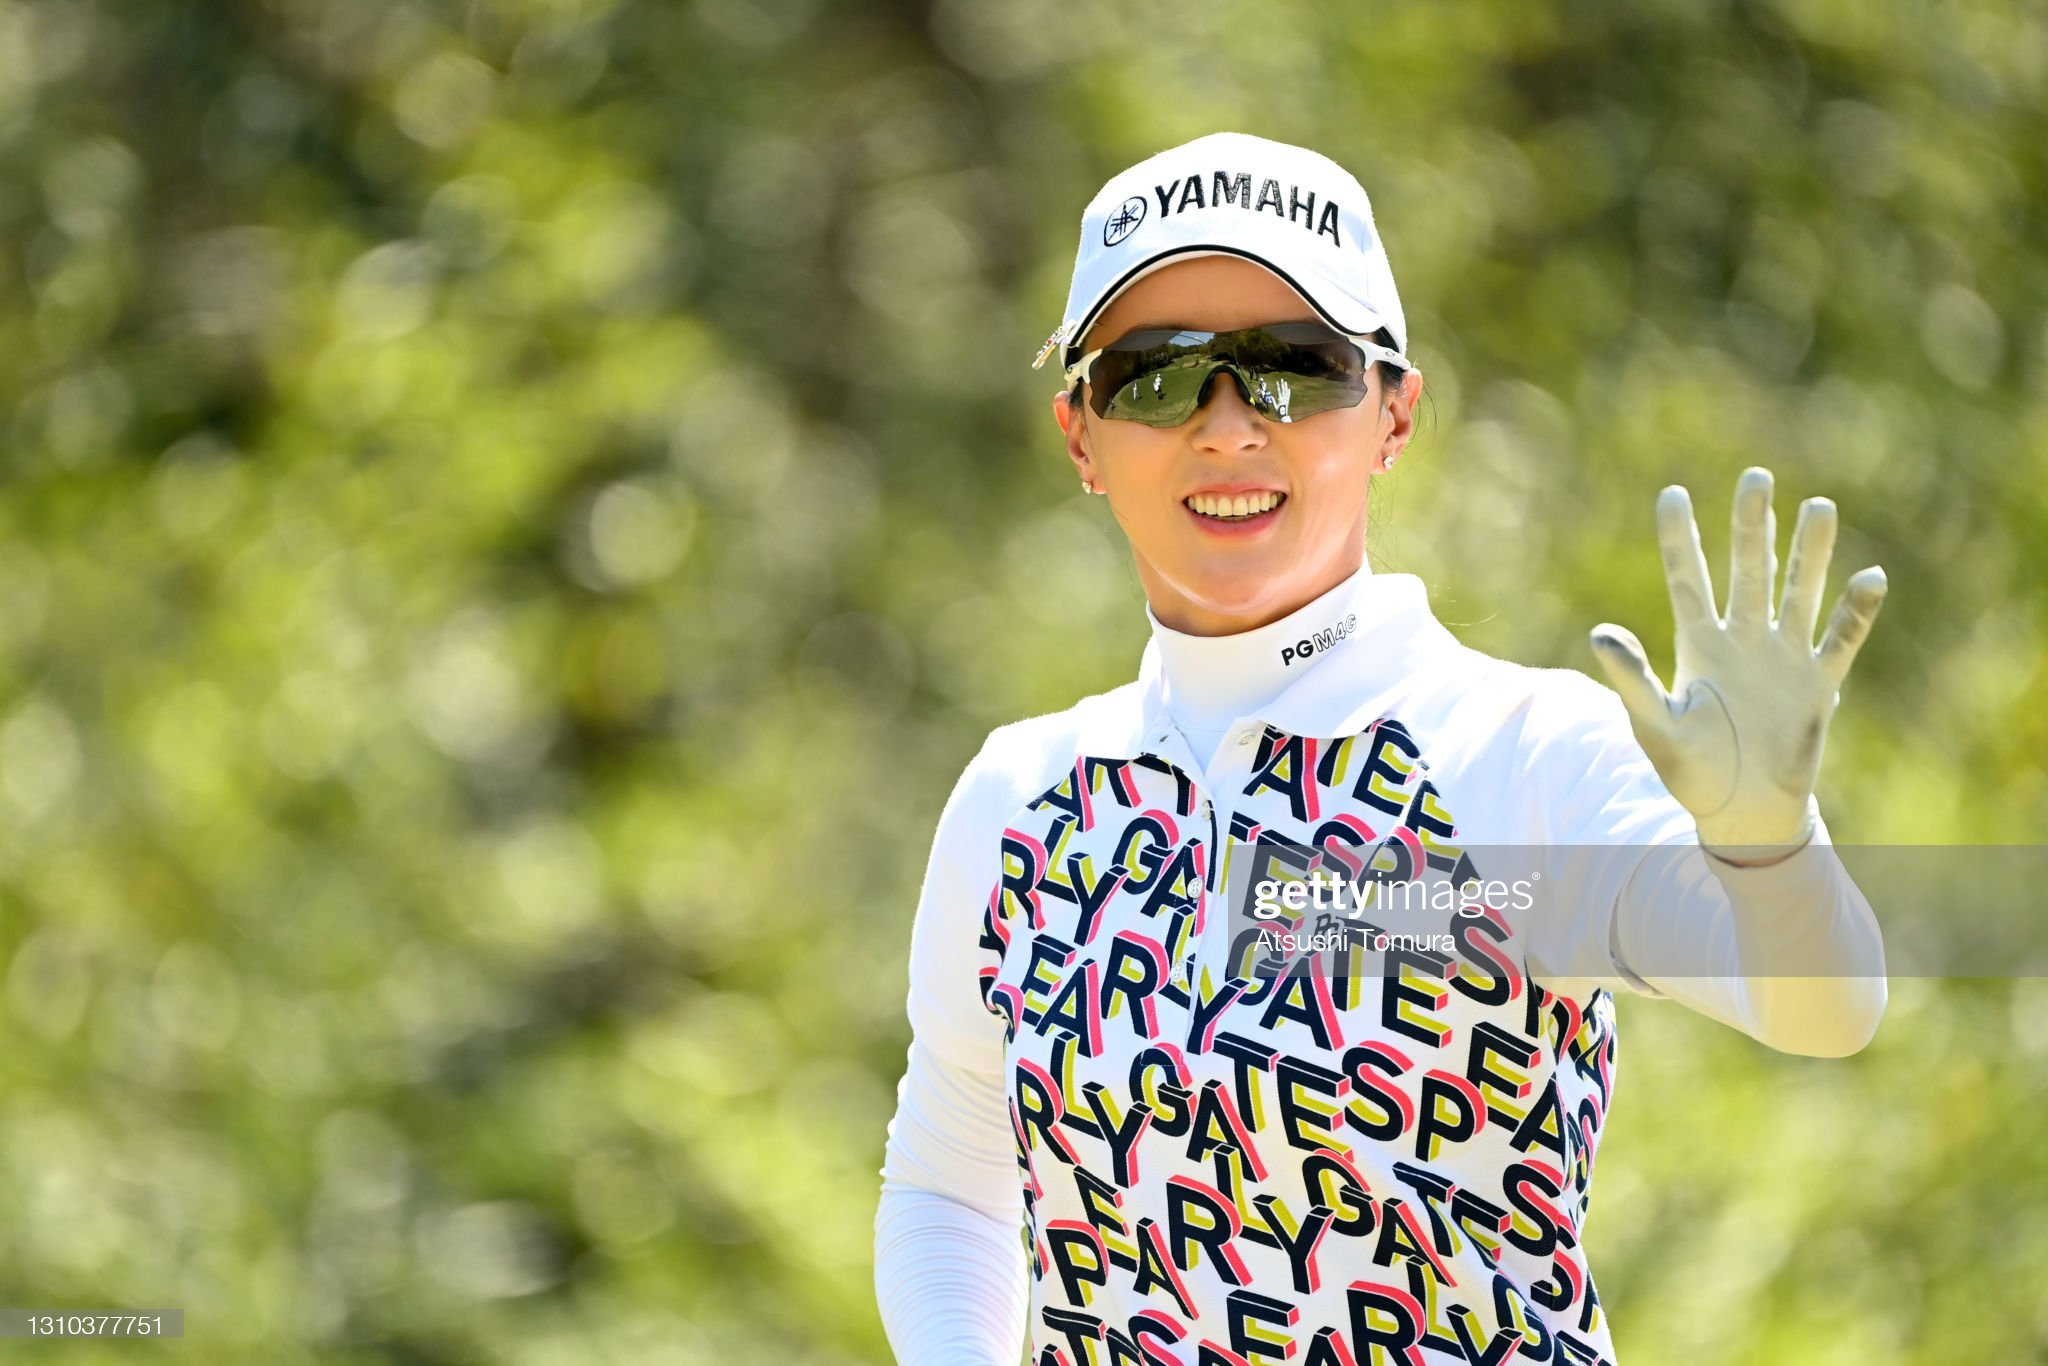 https://media.gettyimages.com/photos/chaeyoung-yoon-of-south-korea-waves-on-the-3rd-hole-during-the-second-picture-id1310377751?s=2048x2048